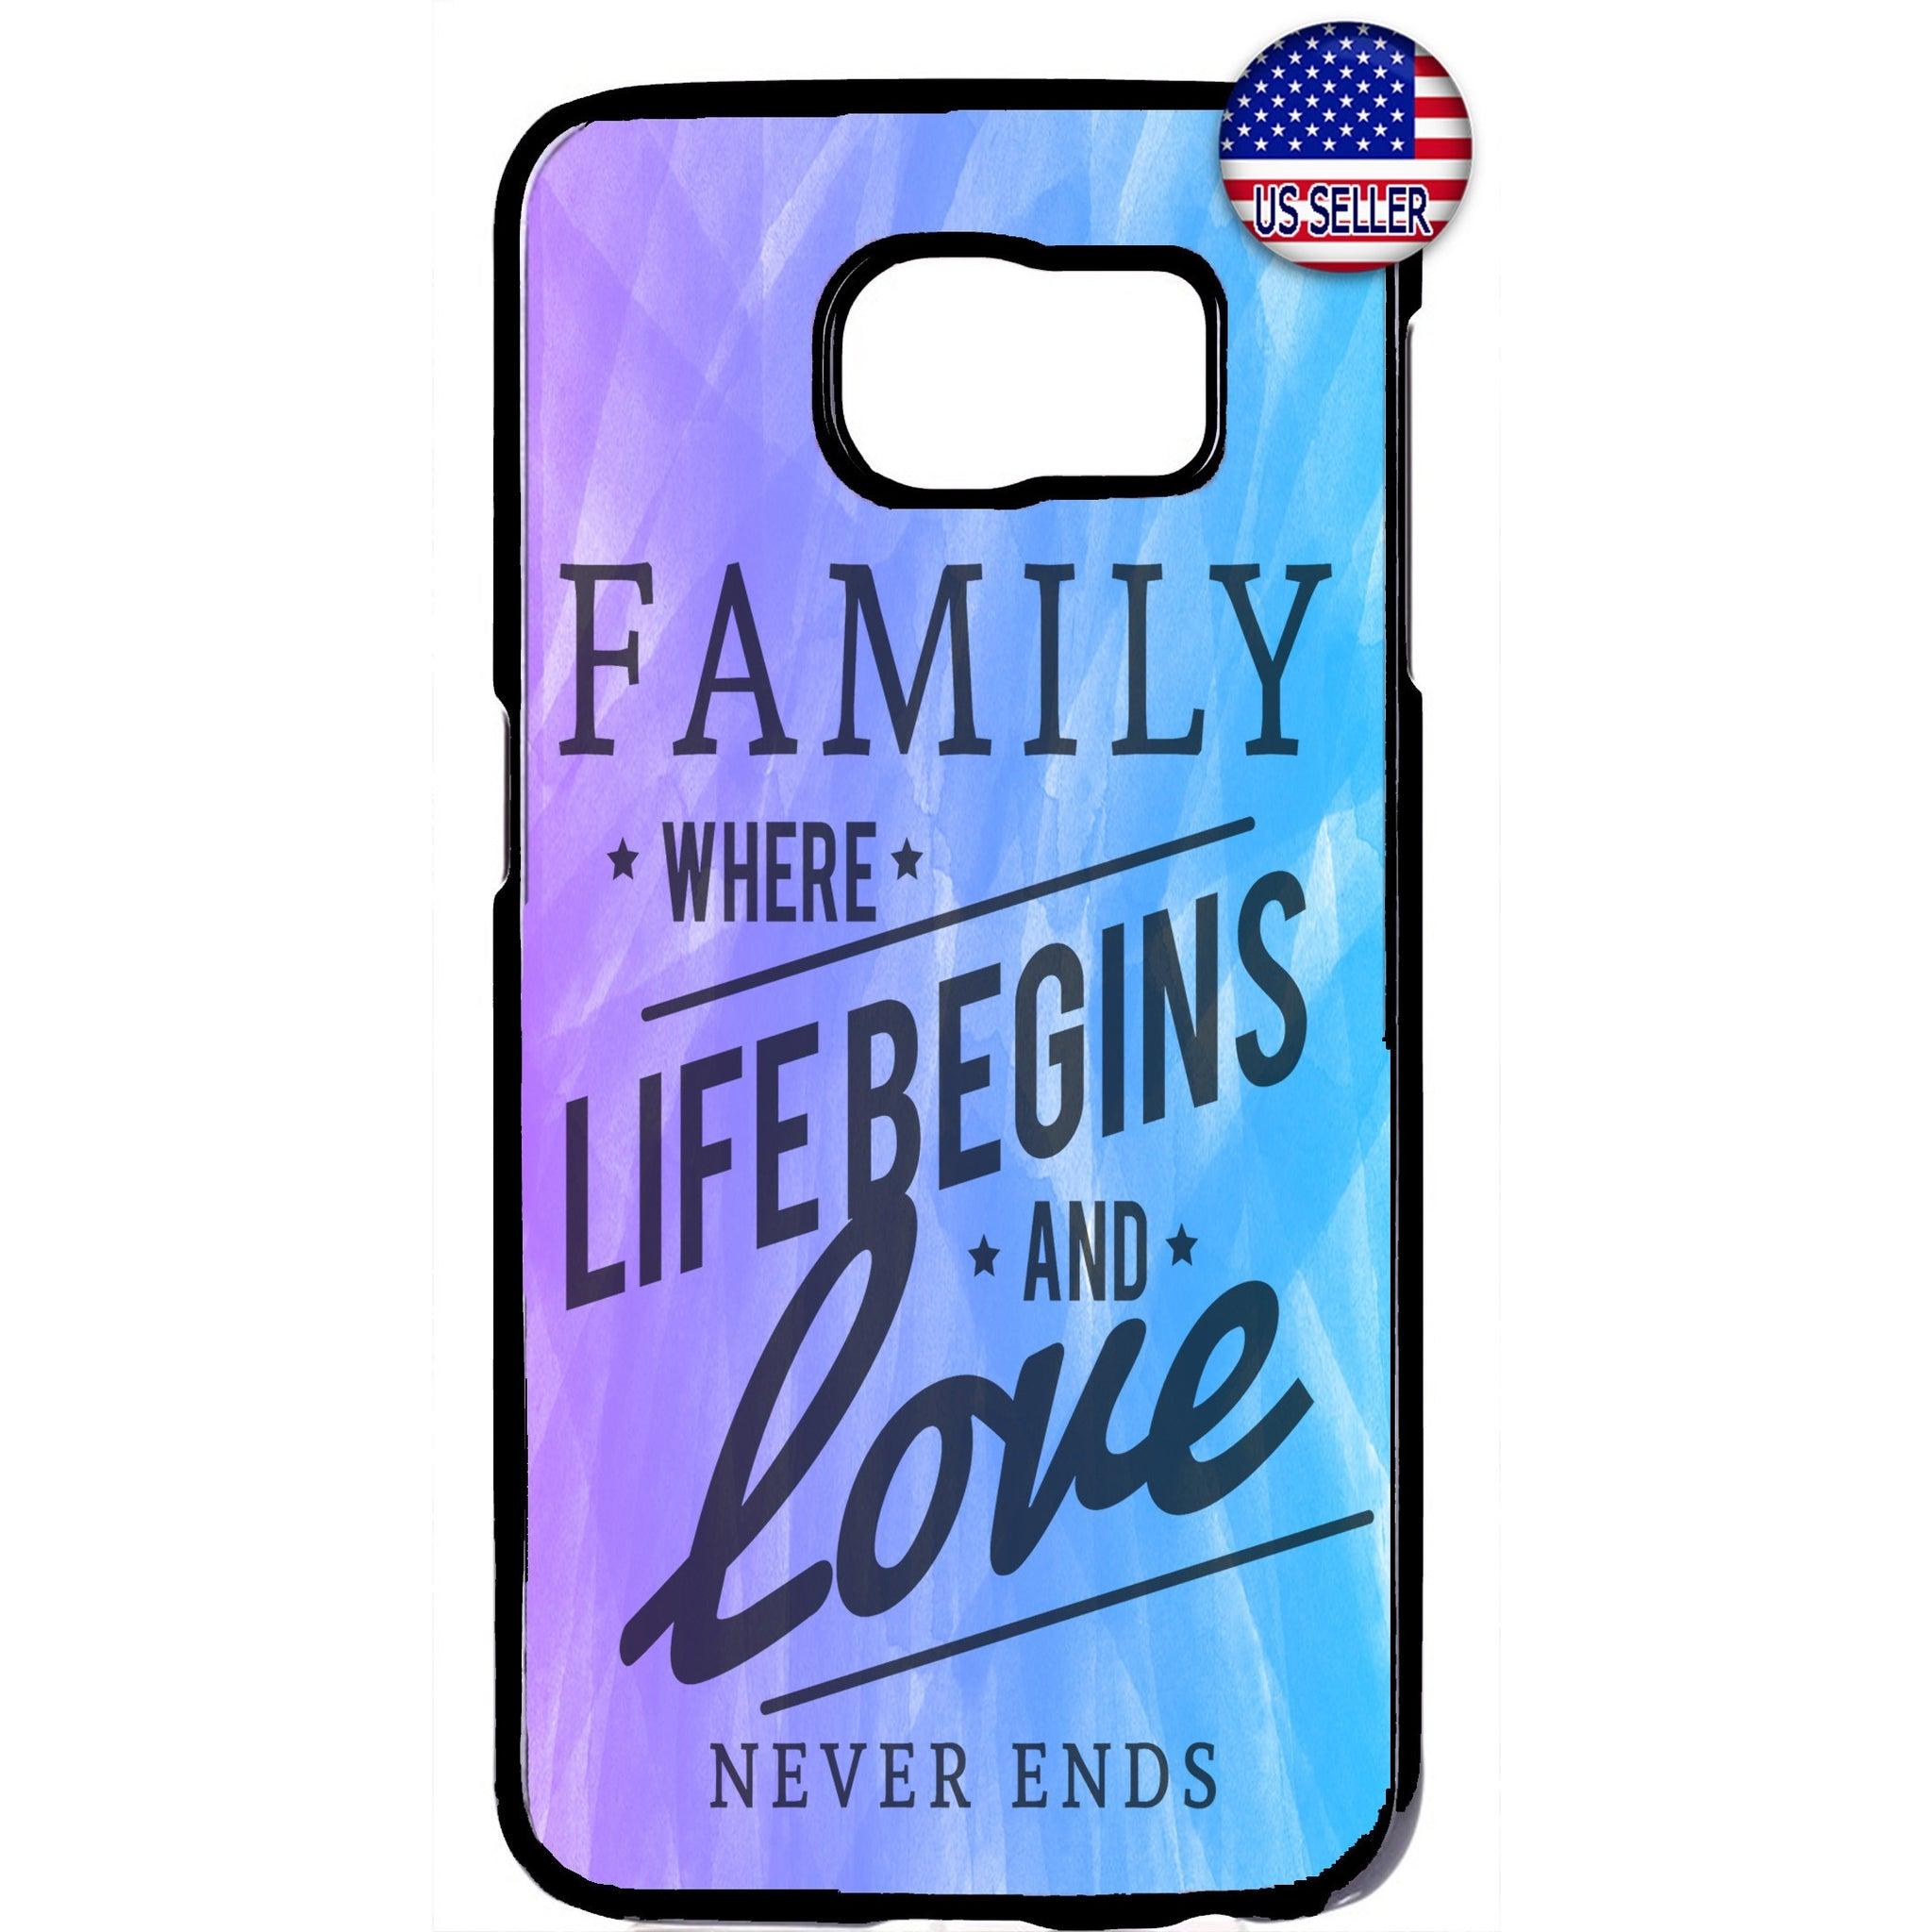 Live Begins Family & Love Rubber Case Cover For Samsung Galaxy